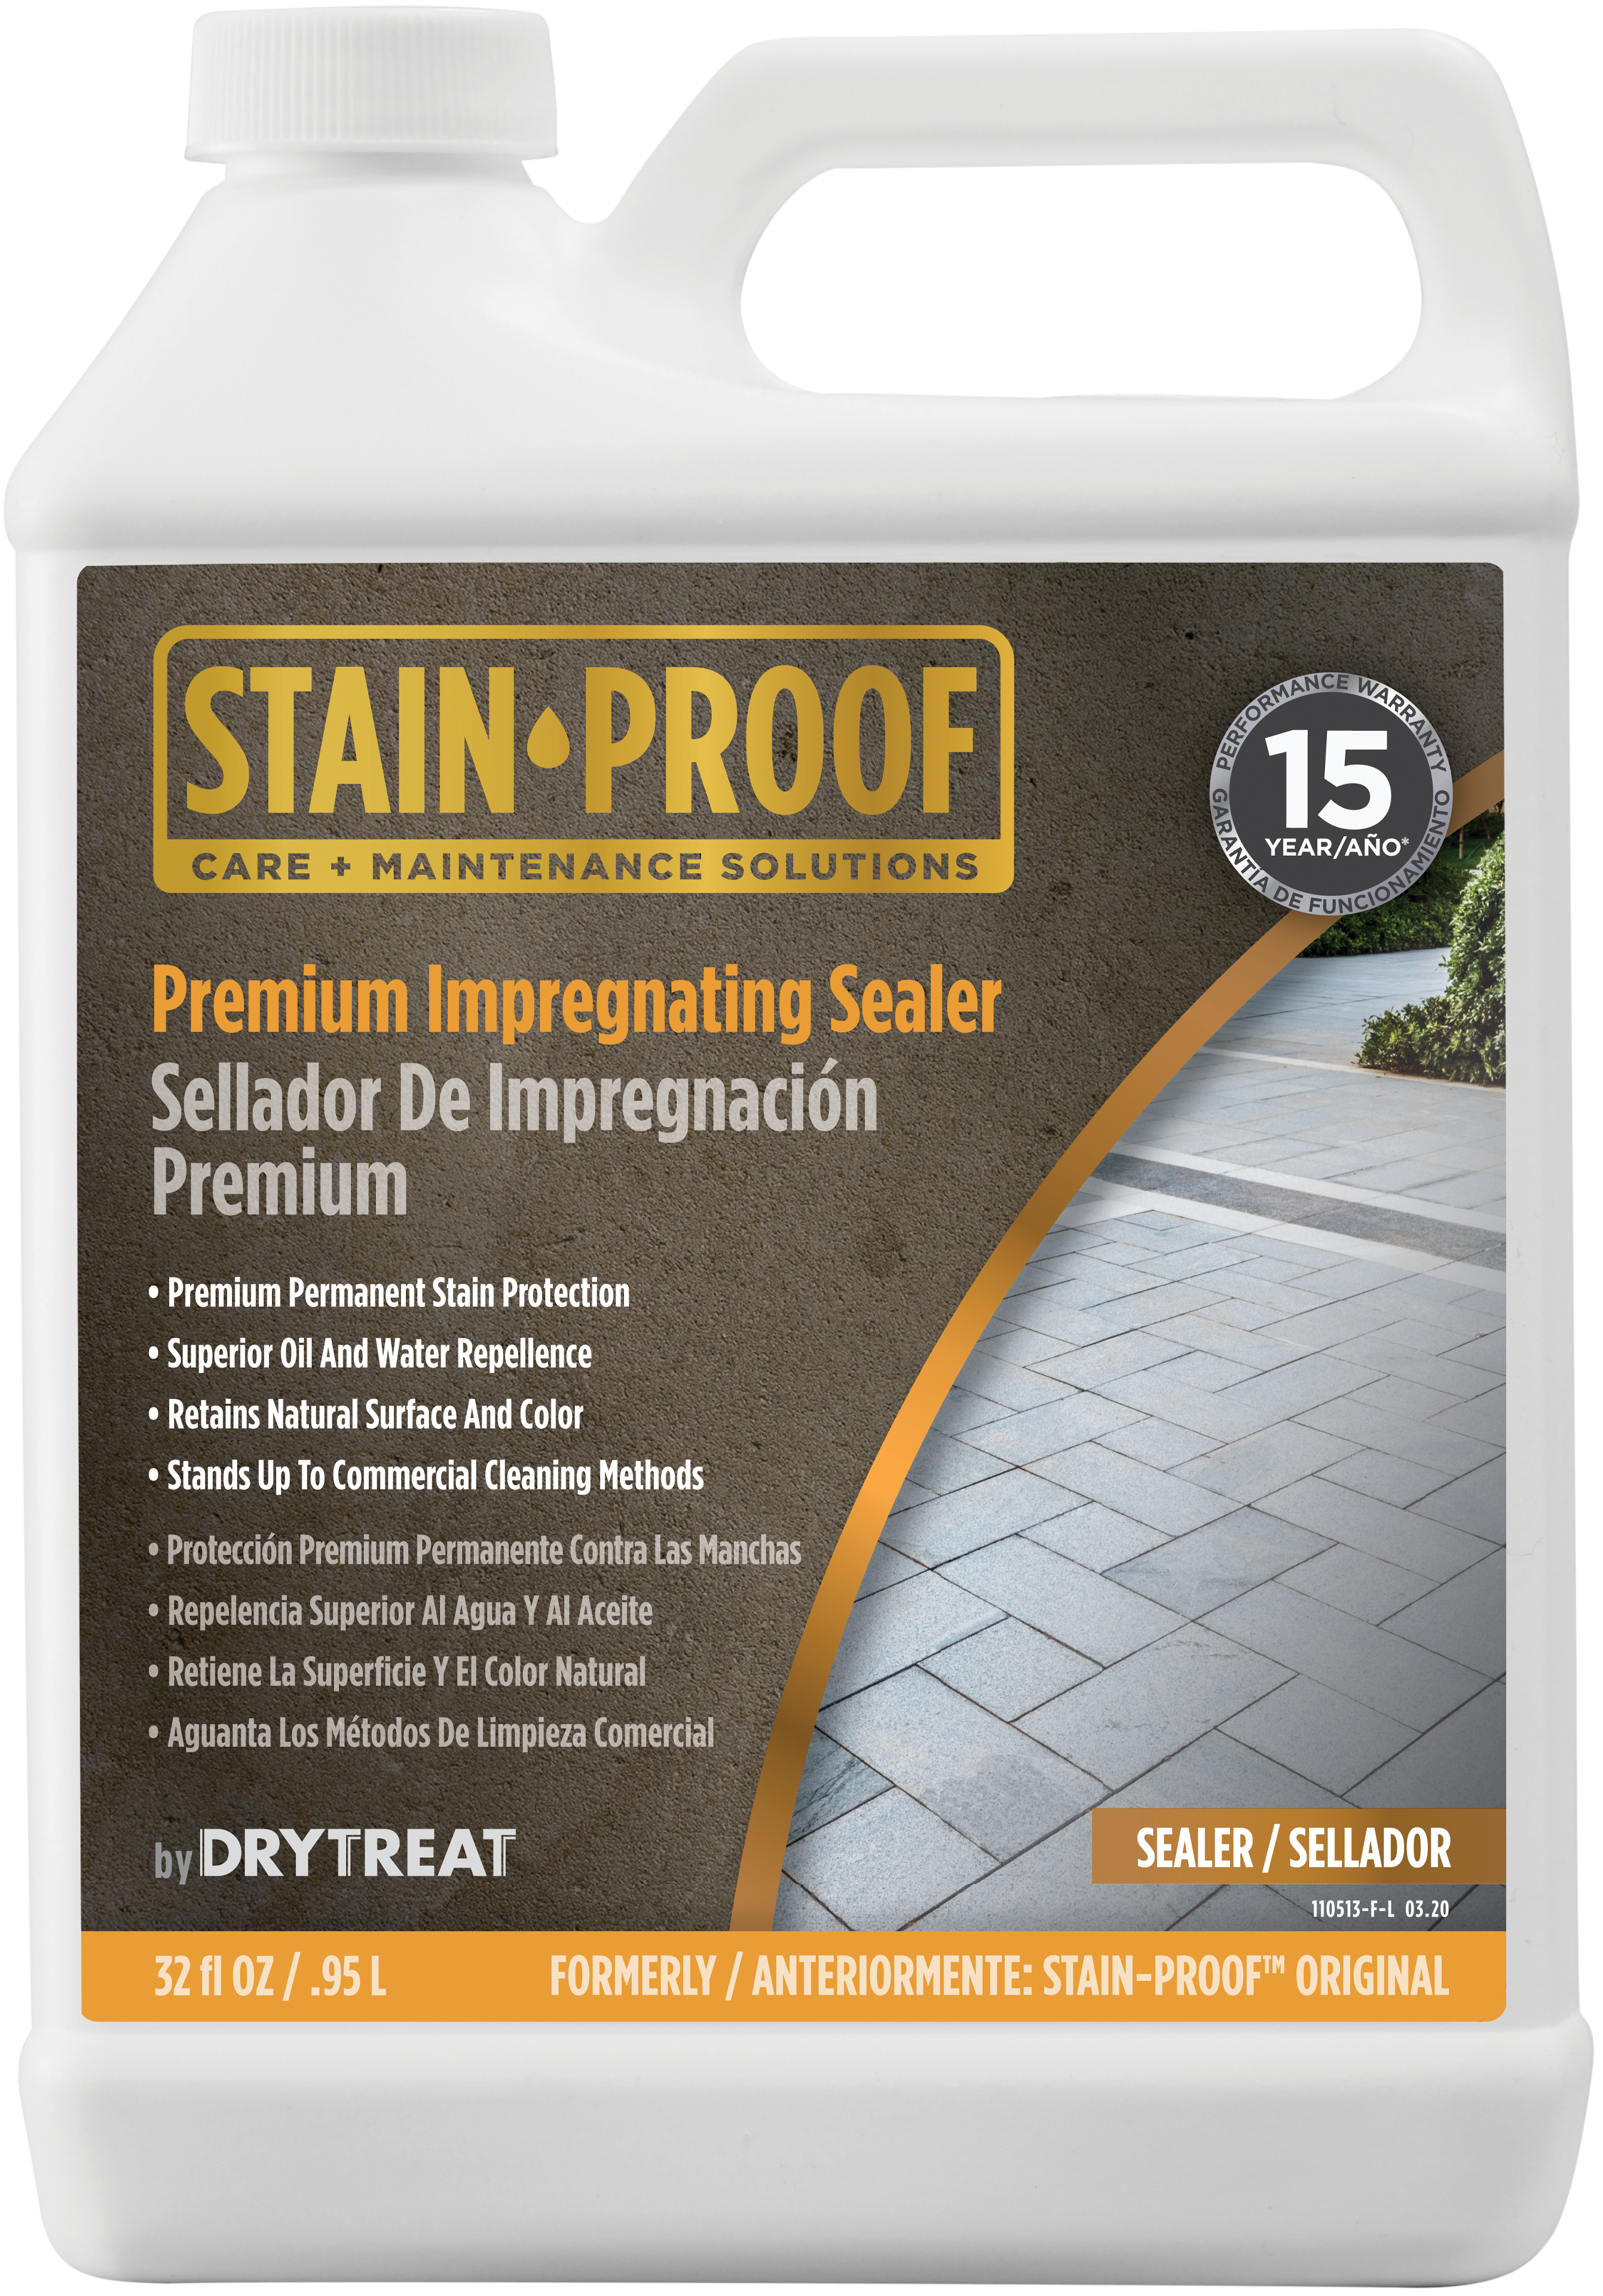 STAIN-PROOF PremiumSealer gallon product